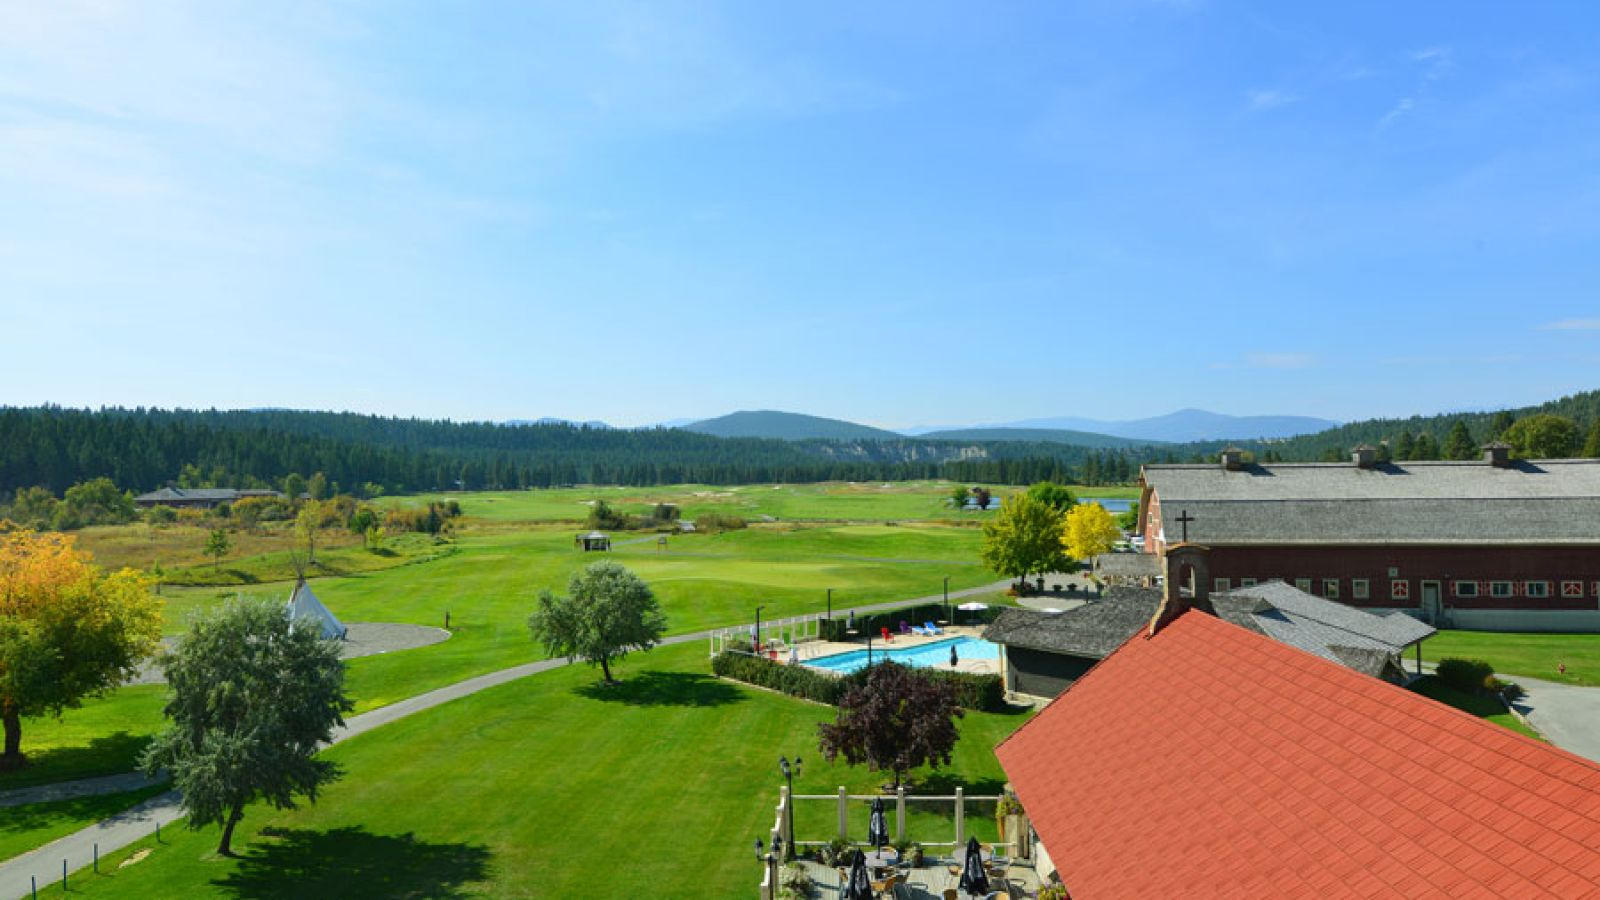 Many amenities are offered including a heated outdoor pool and world-class golf course.